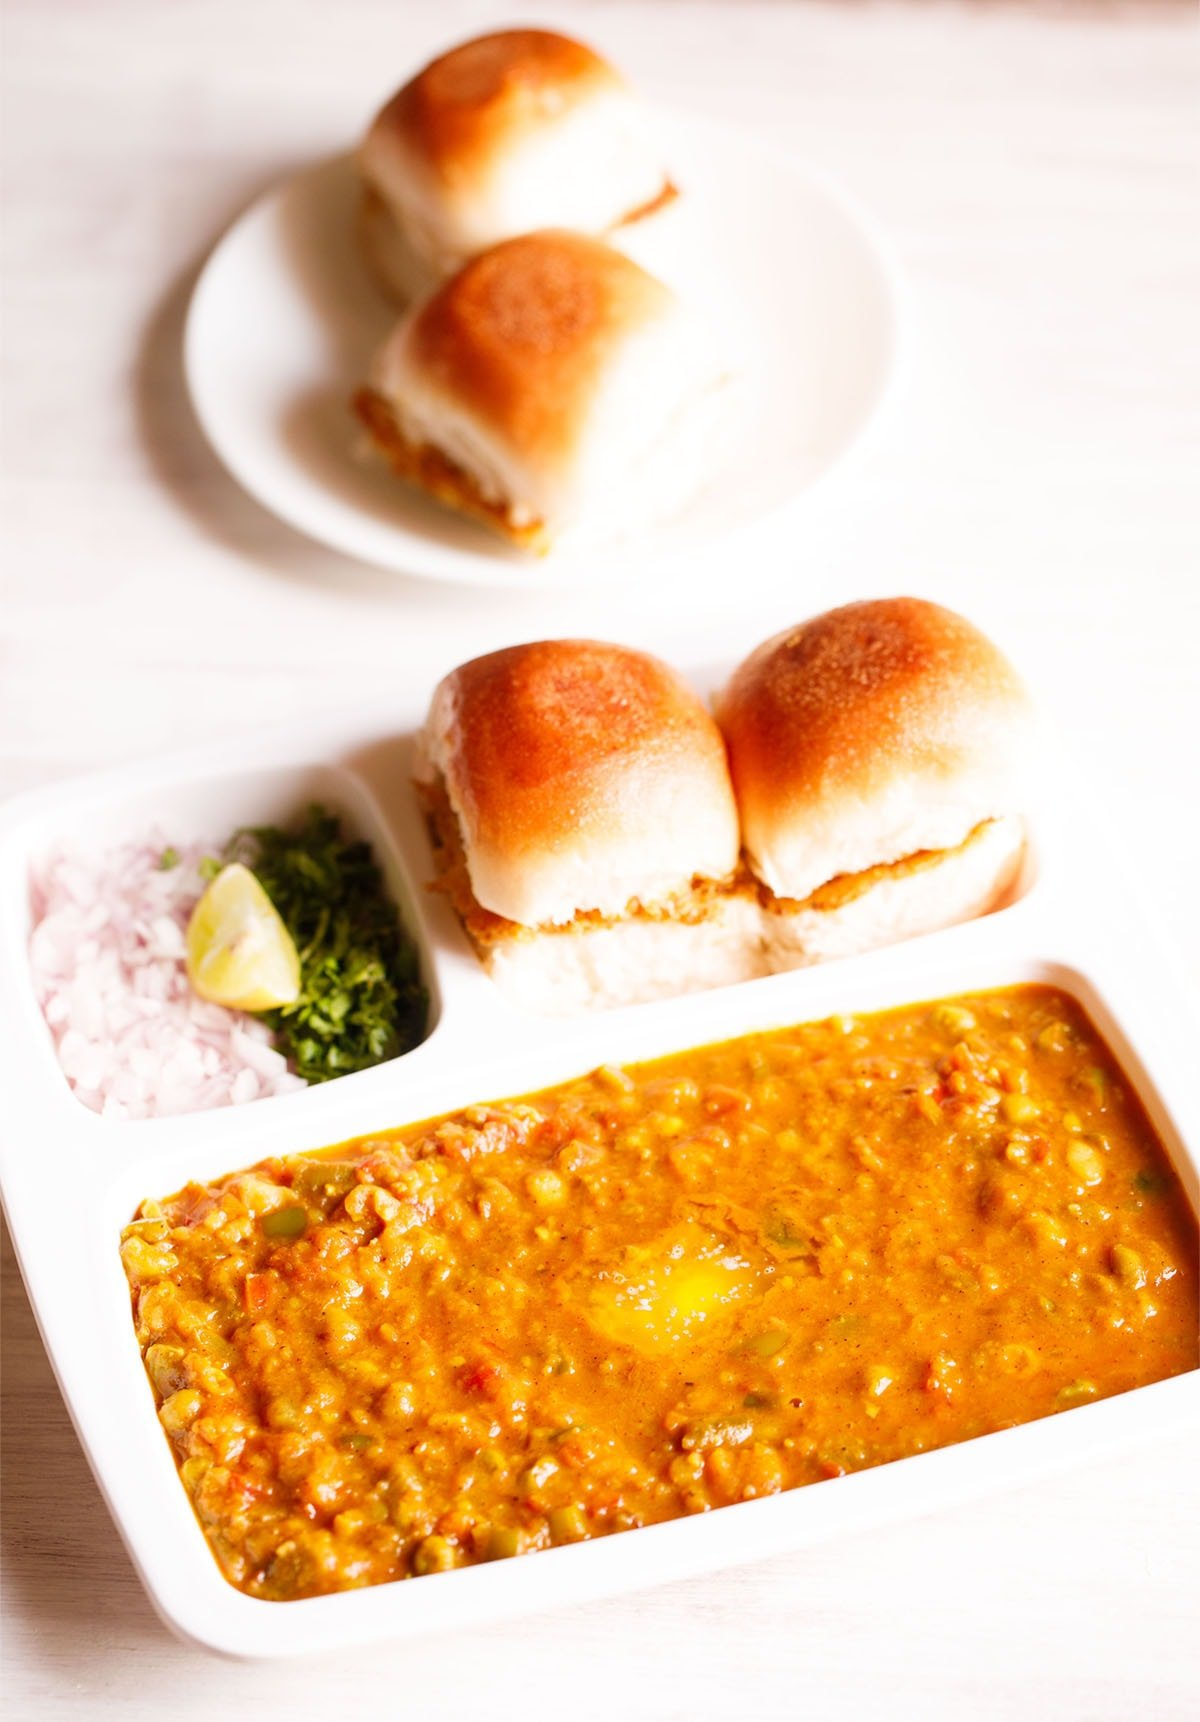 bombay pav bhaji served in a rectangular serving tray with buttered pav and chopped onions, cilantro and lemon wedges on a white table